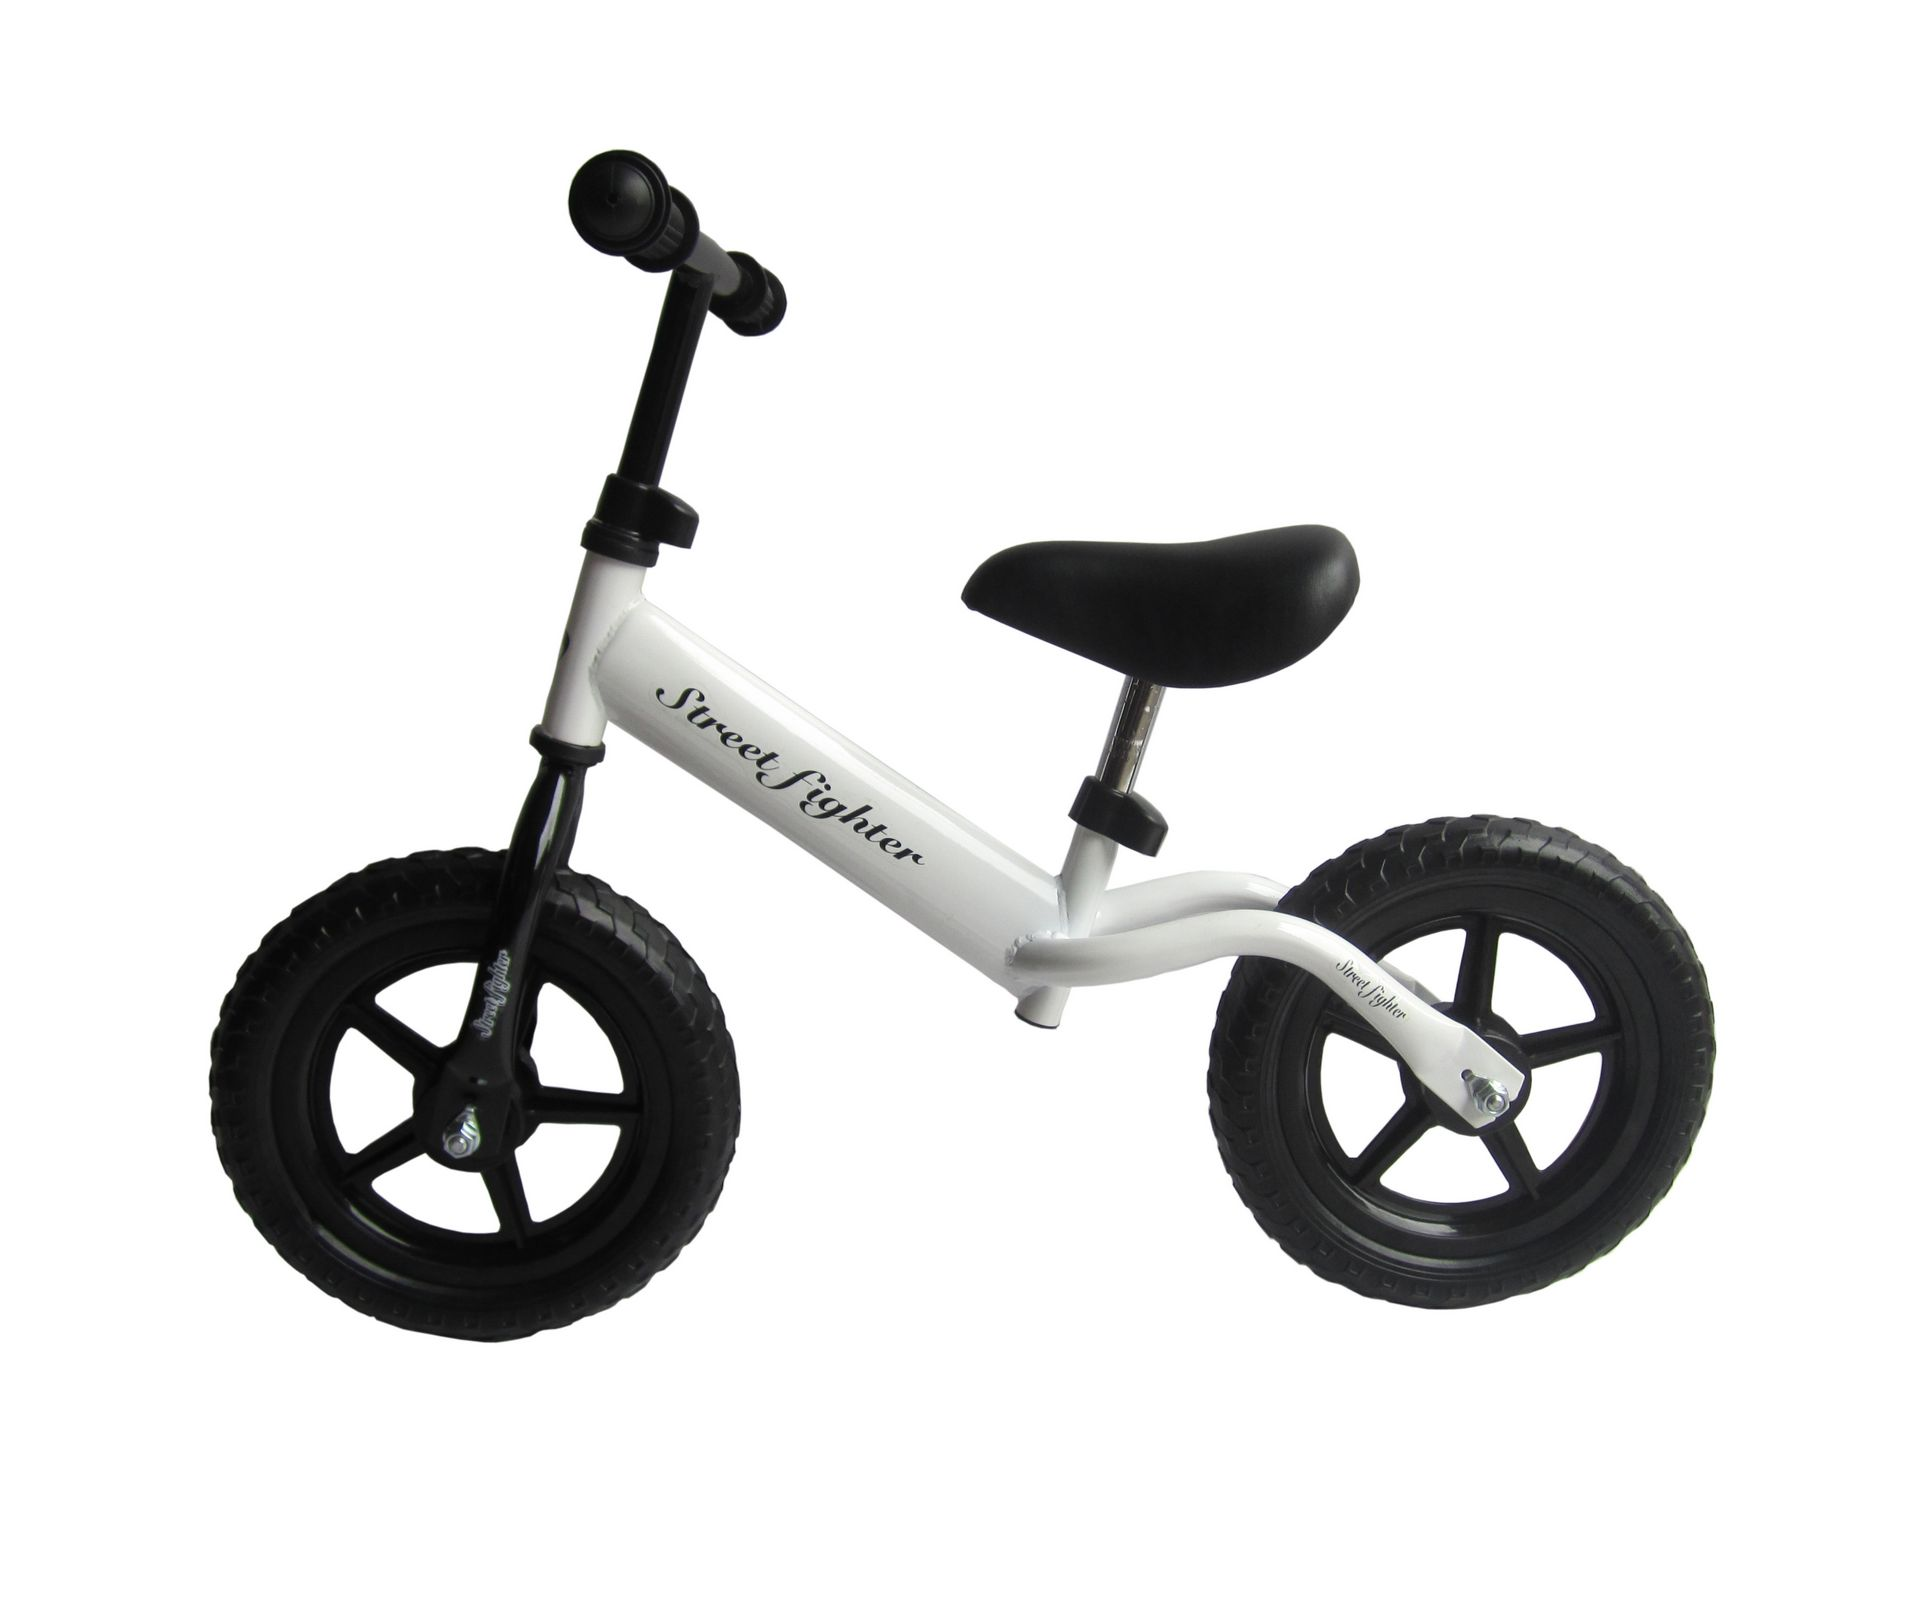 White B01 Kids Steel Balance Bike No Pedal First Running Training Learning Cycle